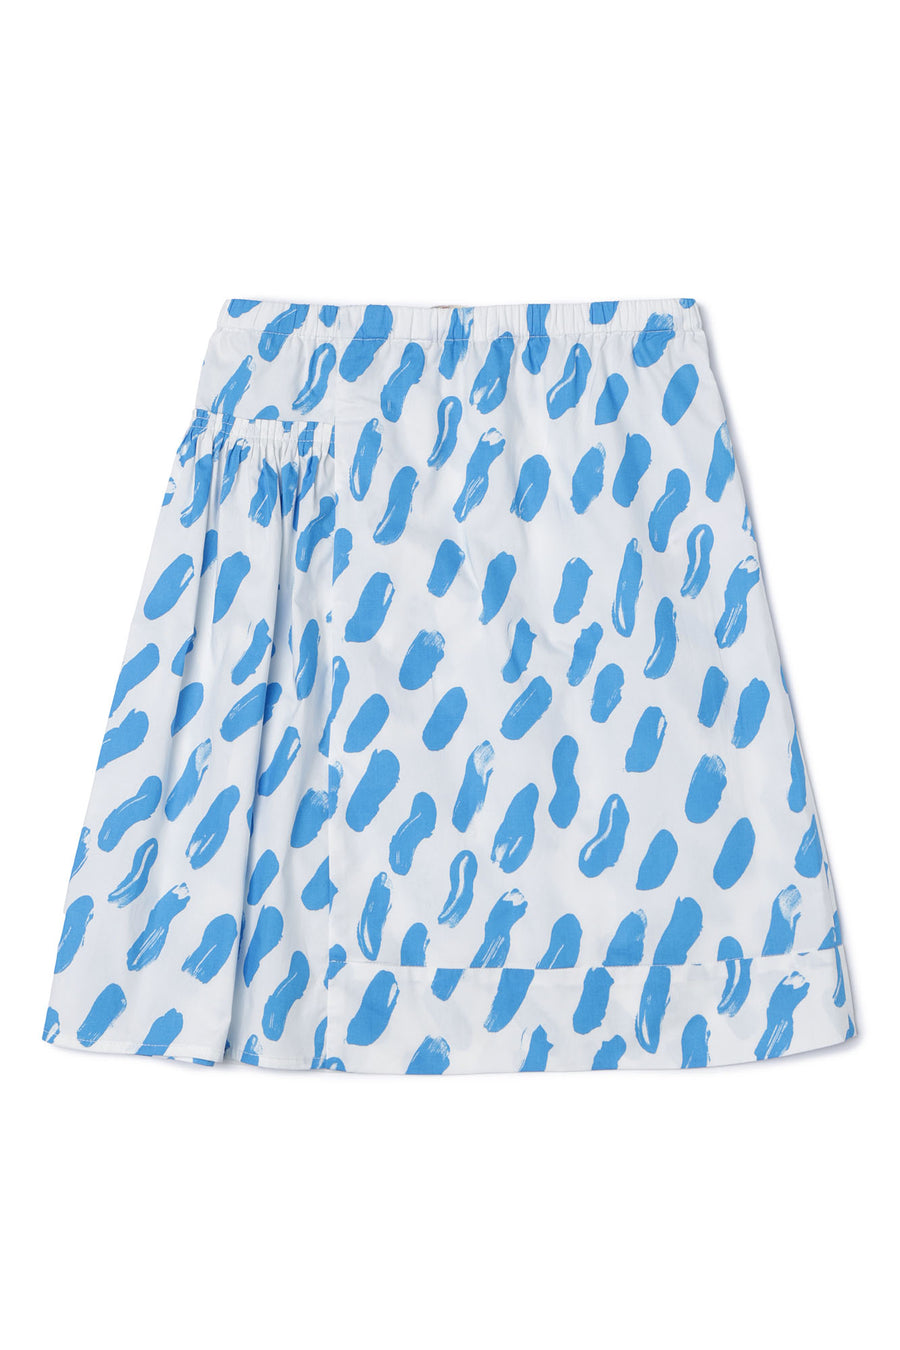 Blue Strokes Skirt by Marni